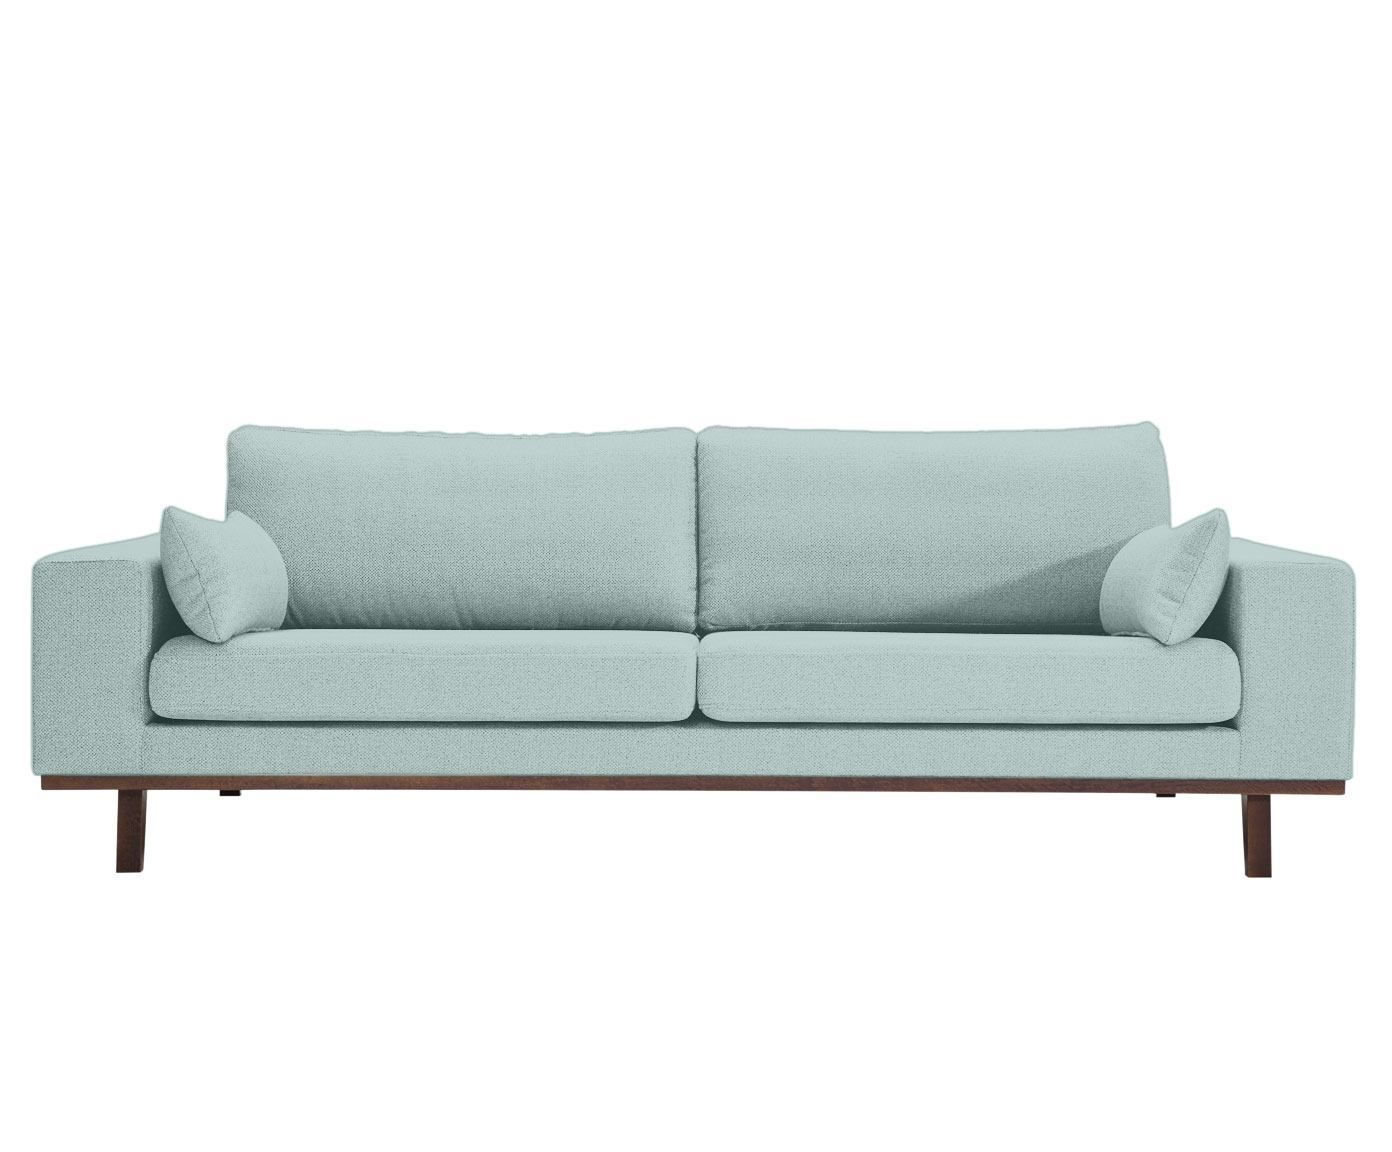 Dreisitzer-Sofa New London, aqua | Westwing Home & Living | chairs ...